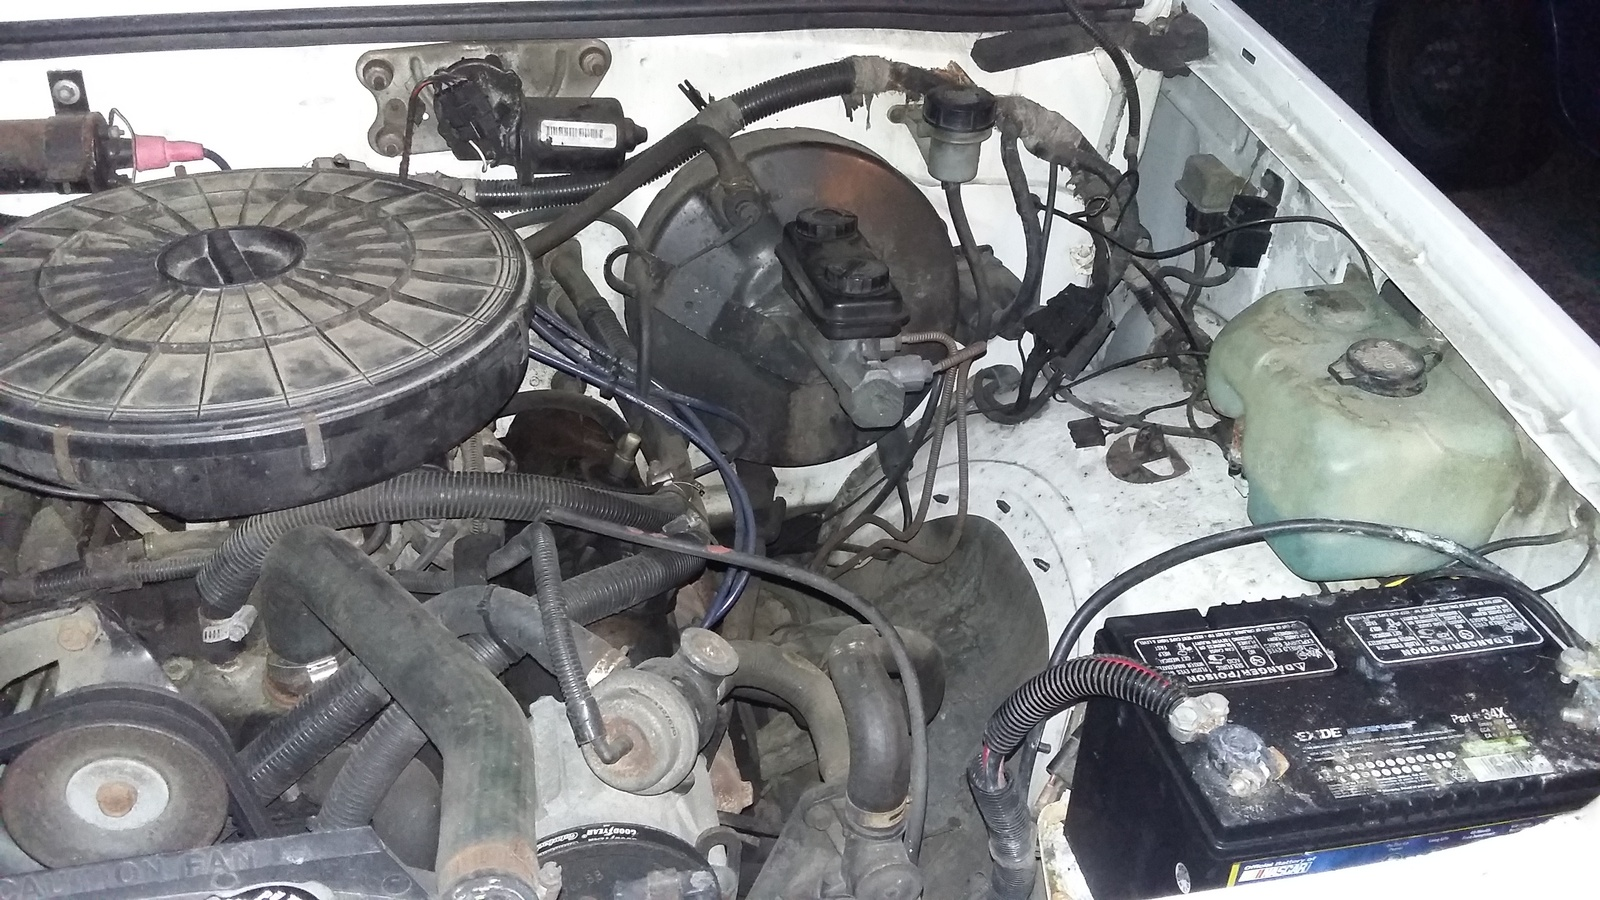 Dodge Dakota Questions - Where is the ASD located under the hood of a 1989 dakota - CarGurus